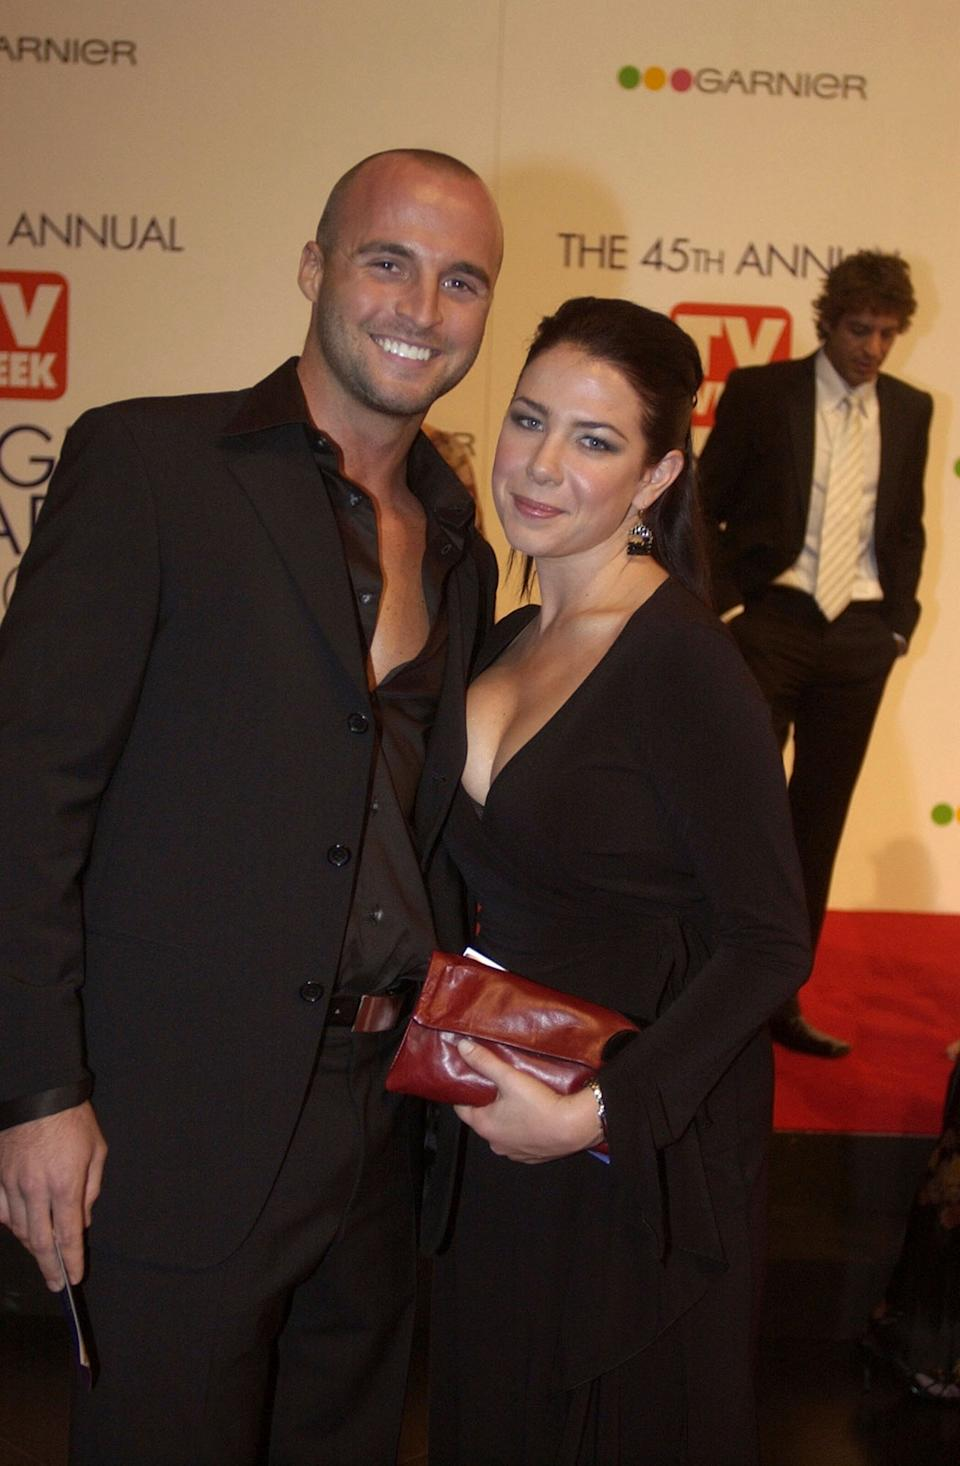 Ben Unwin (left) pictured with his former Home and Away co-star Kate Ritchie in 2003. (Photo: Patrick Riviere via Getty Images)